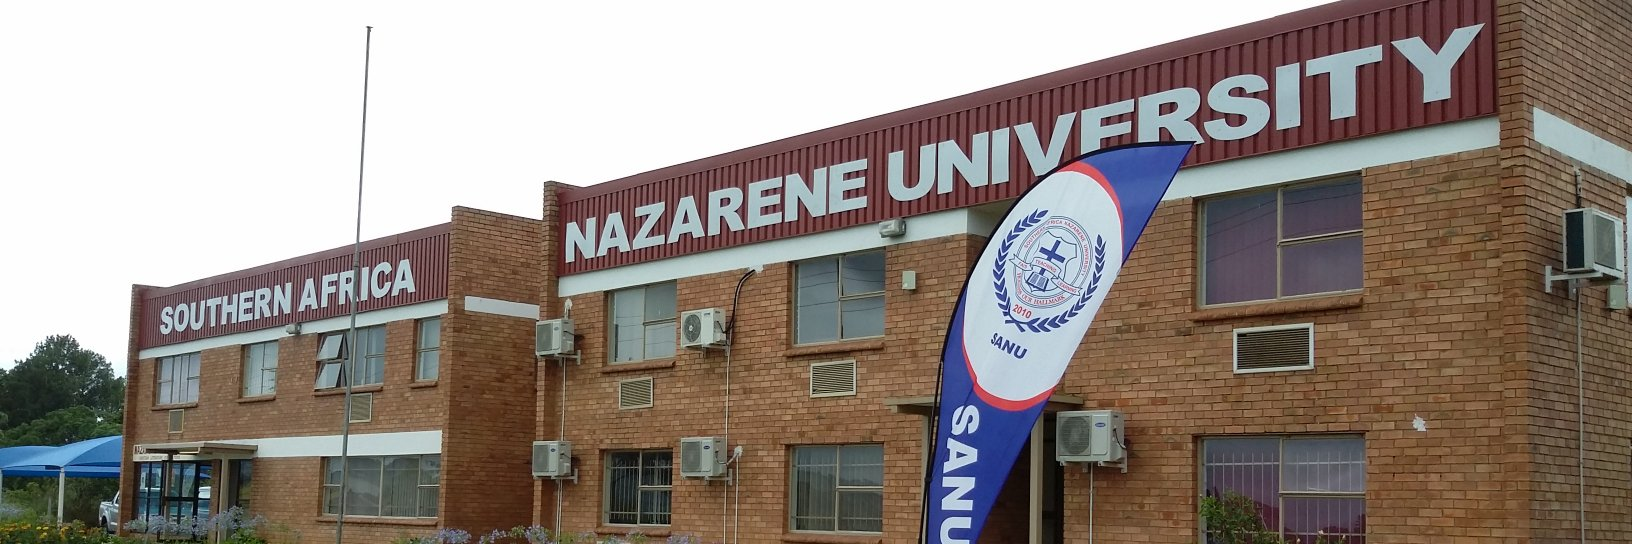 Southern African Nazarene University's official Twitter account